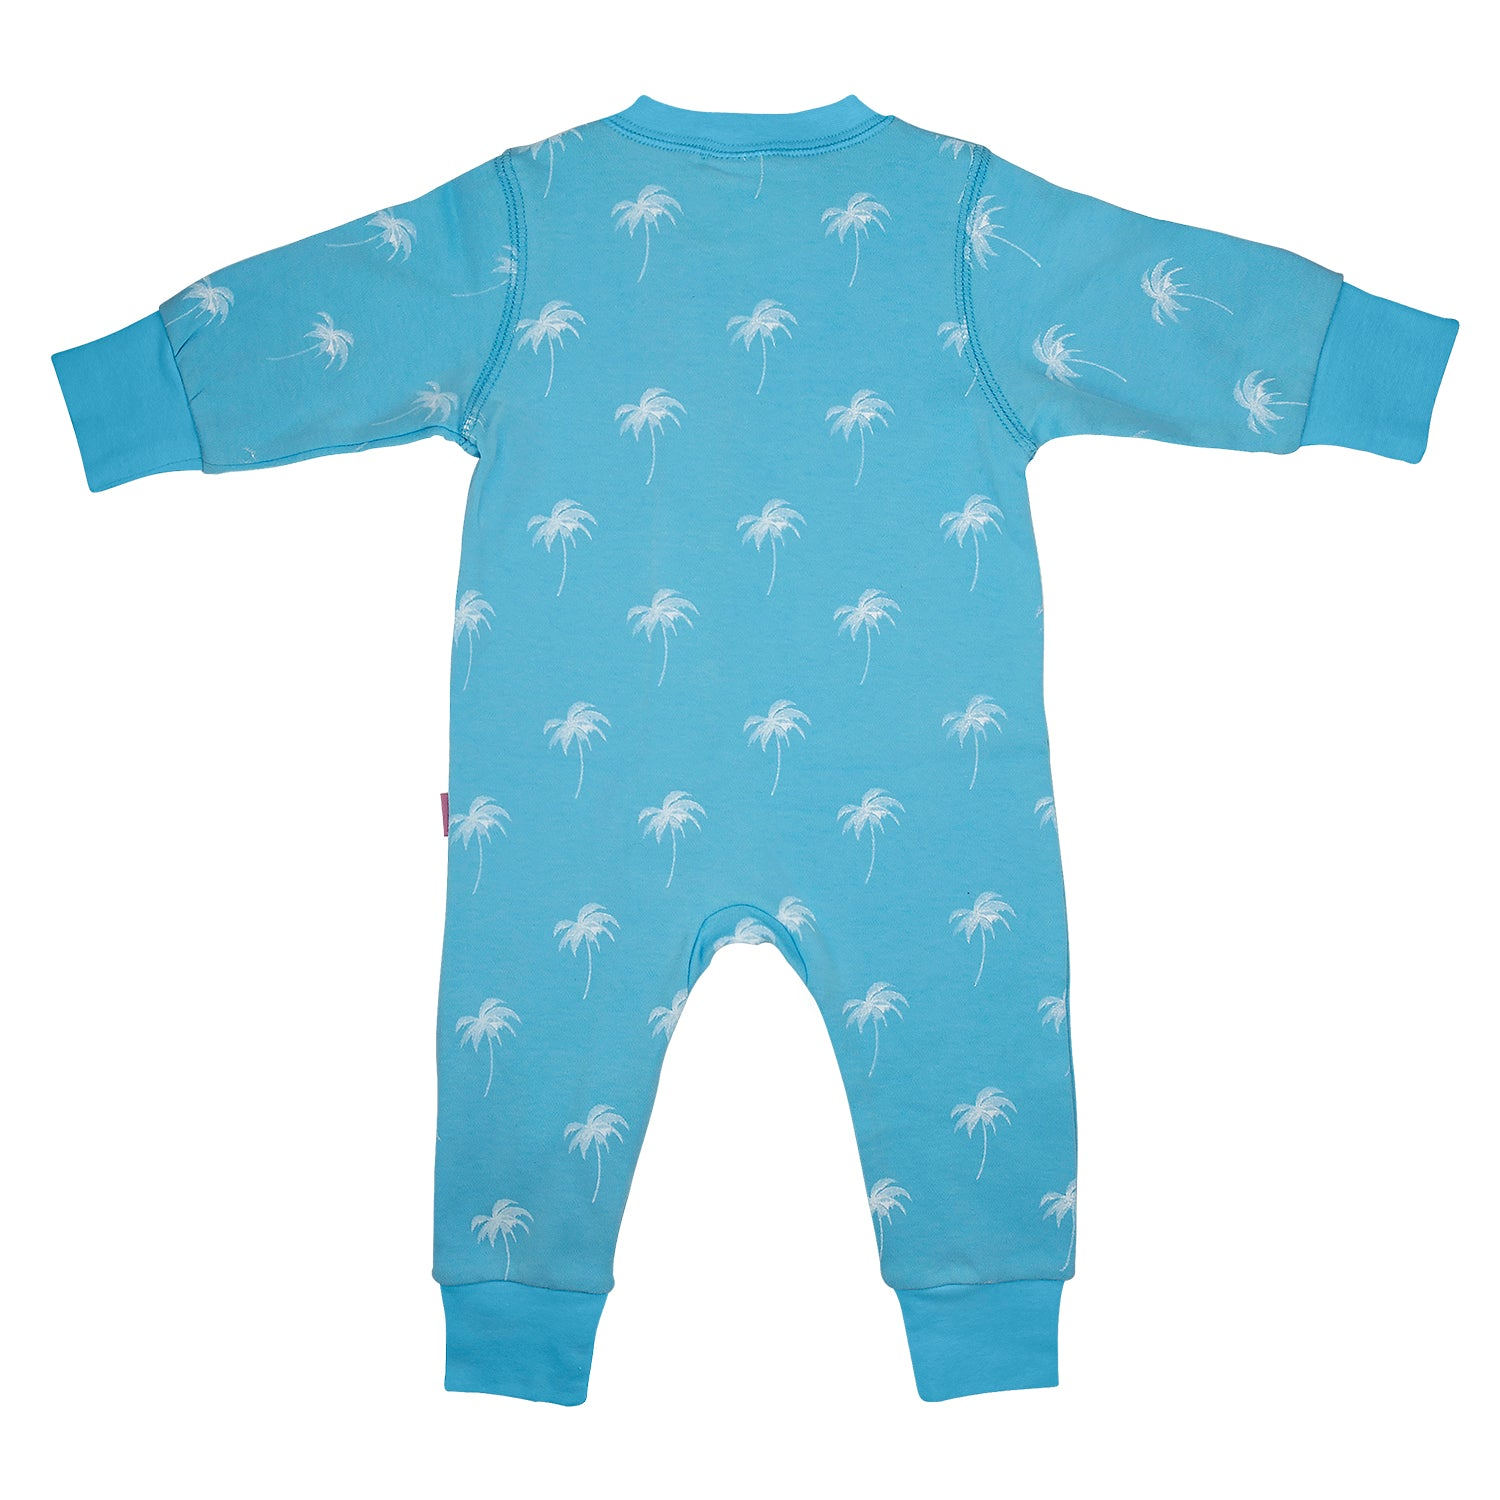 back side of 100% cotton blue sleepsuit for baby's with a white palm print